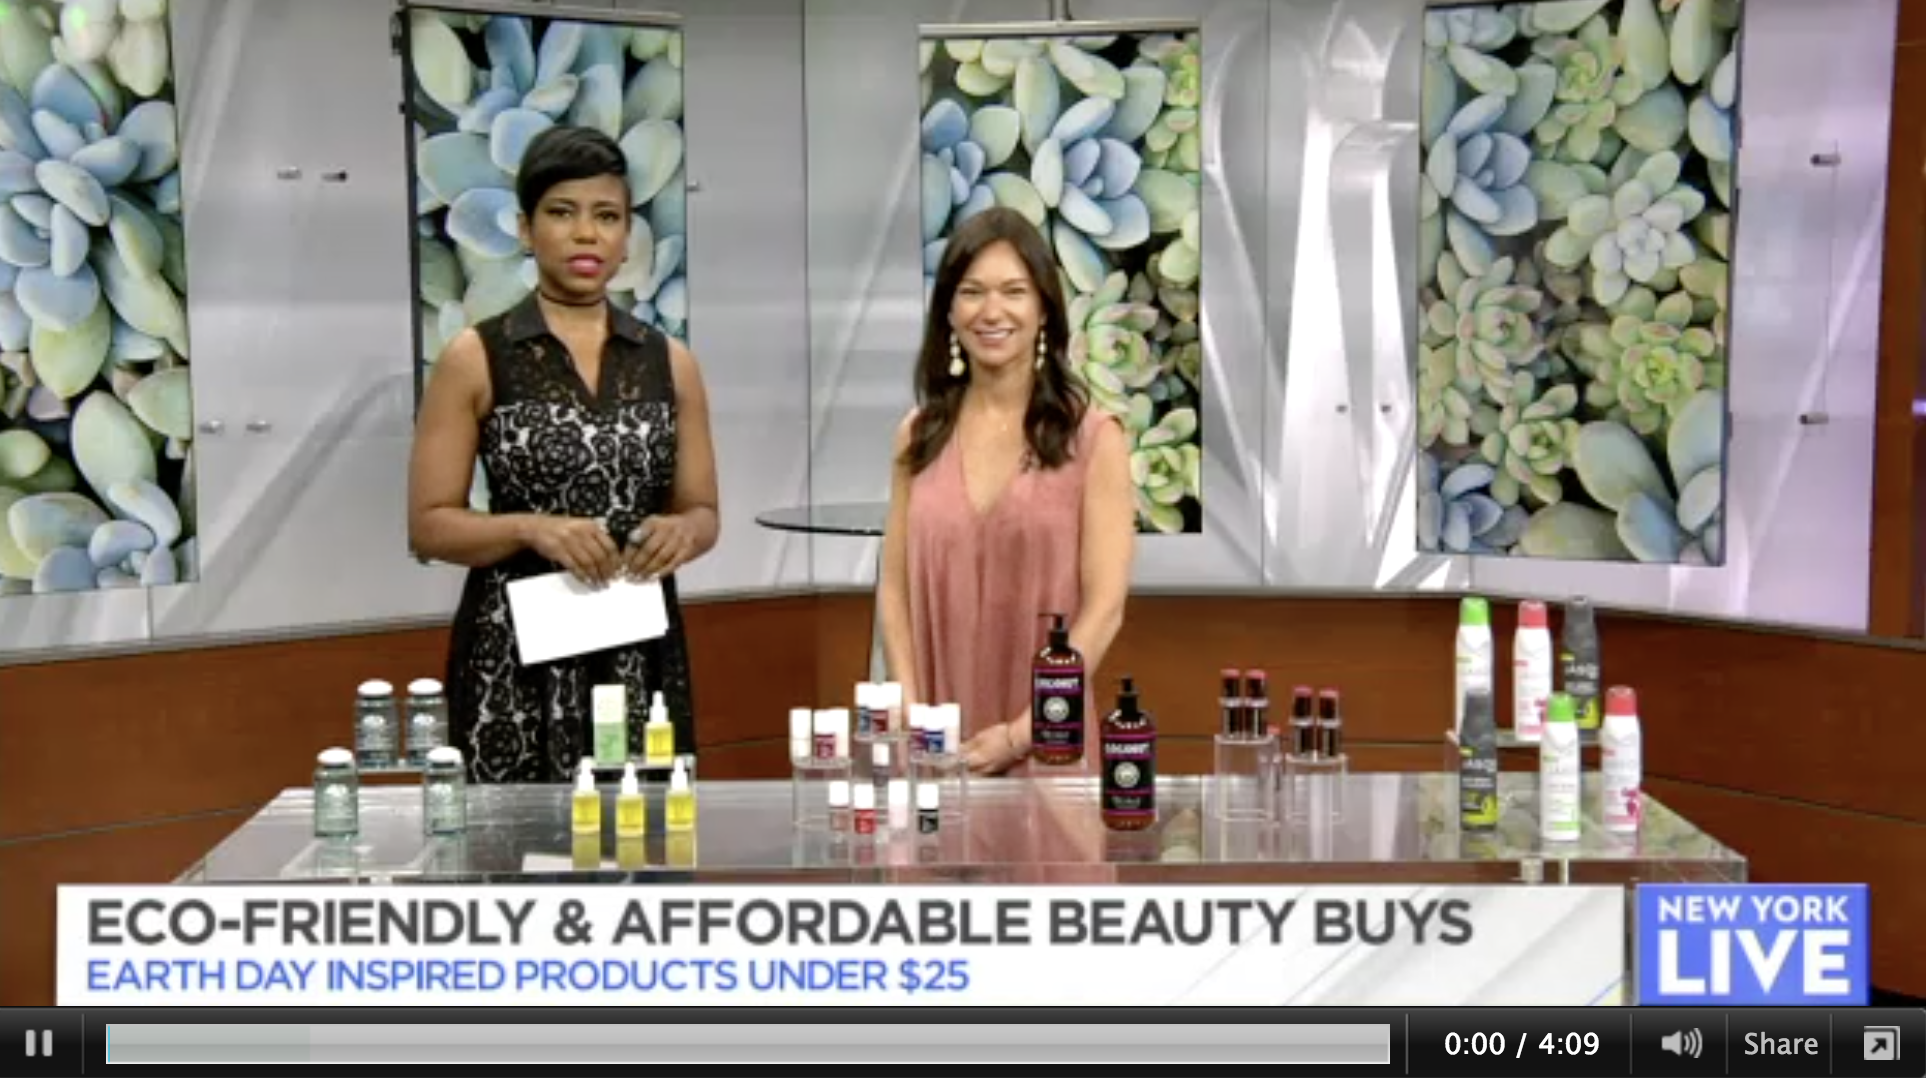 NBC New York Live: Eco-Friendly Beauty Buys Under $25